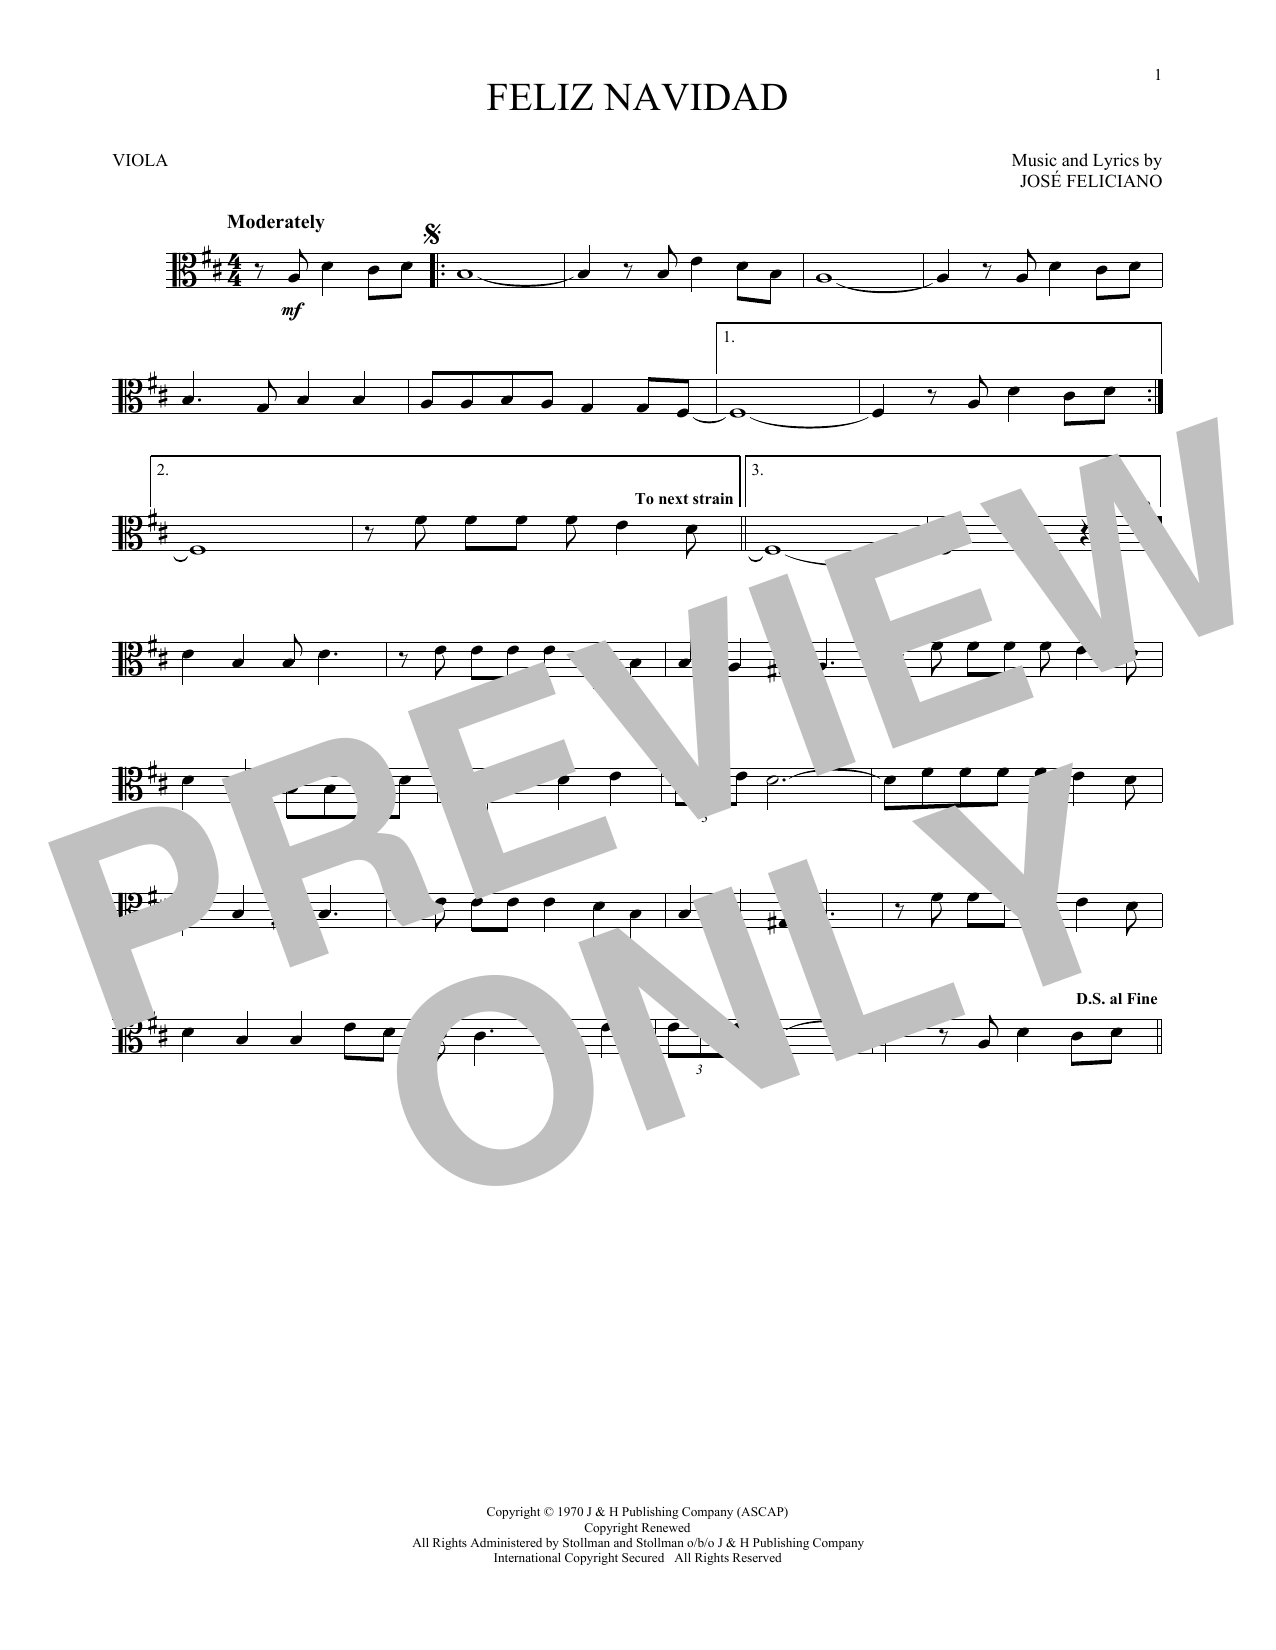 jose feliciano feliz navidad sheet music notes chords download world notes viola pdf print 196564 sheet music piano notes chords musicnotesroom